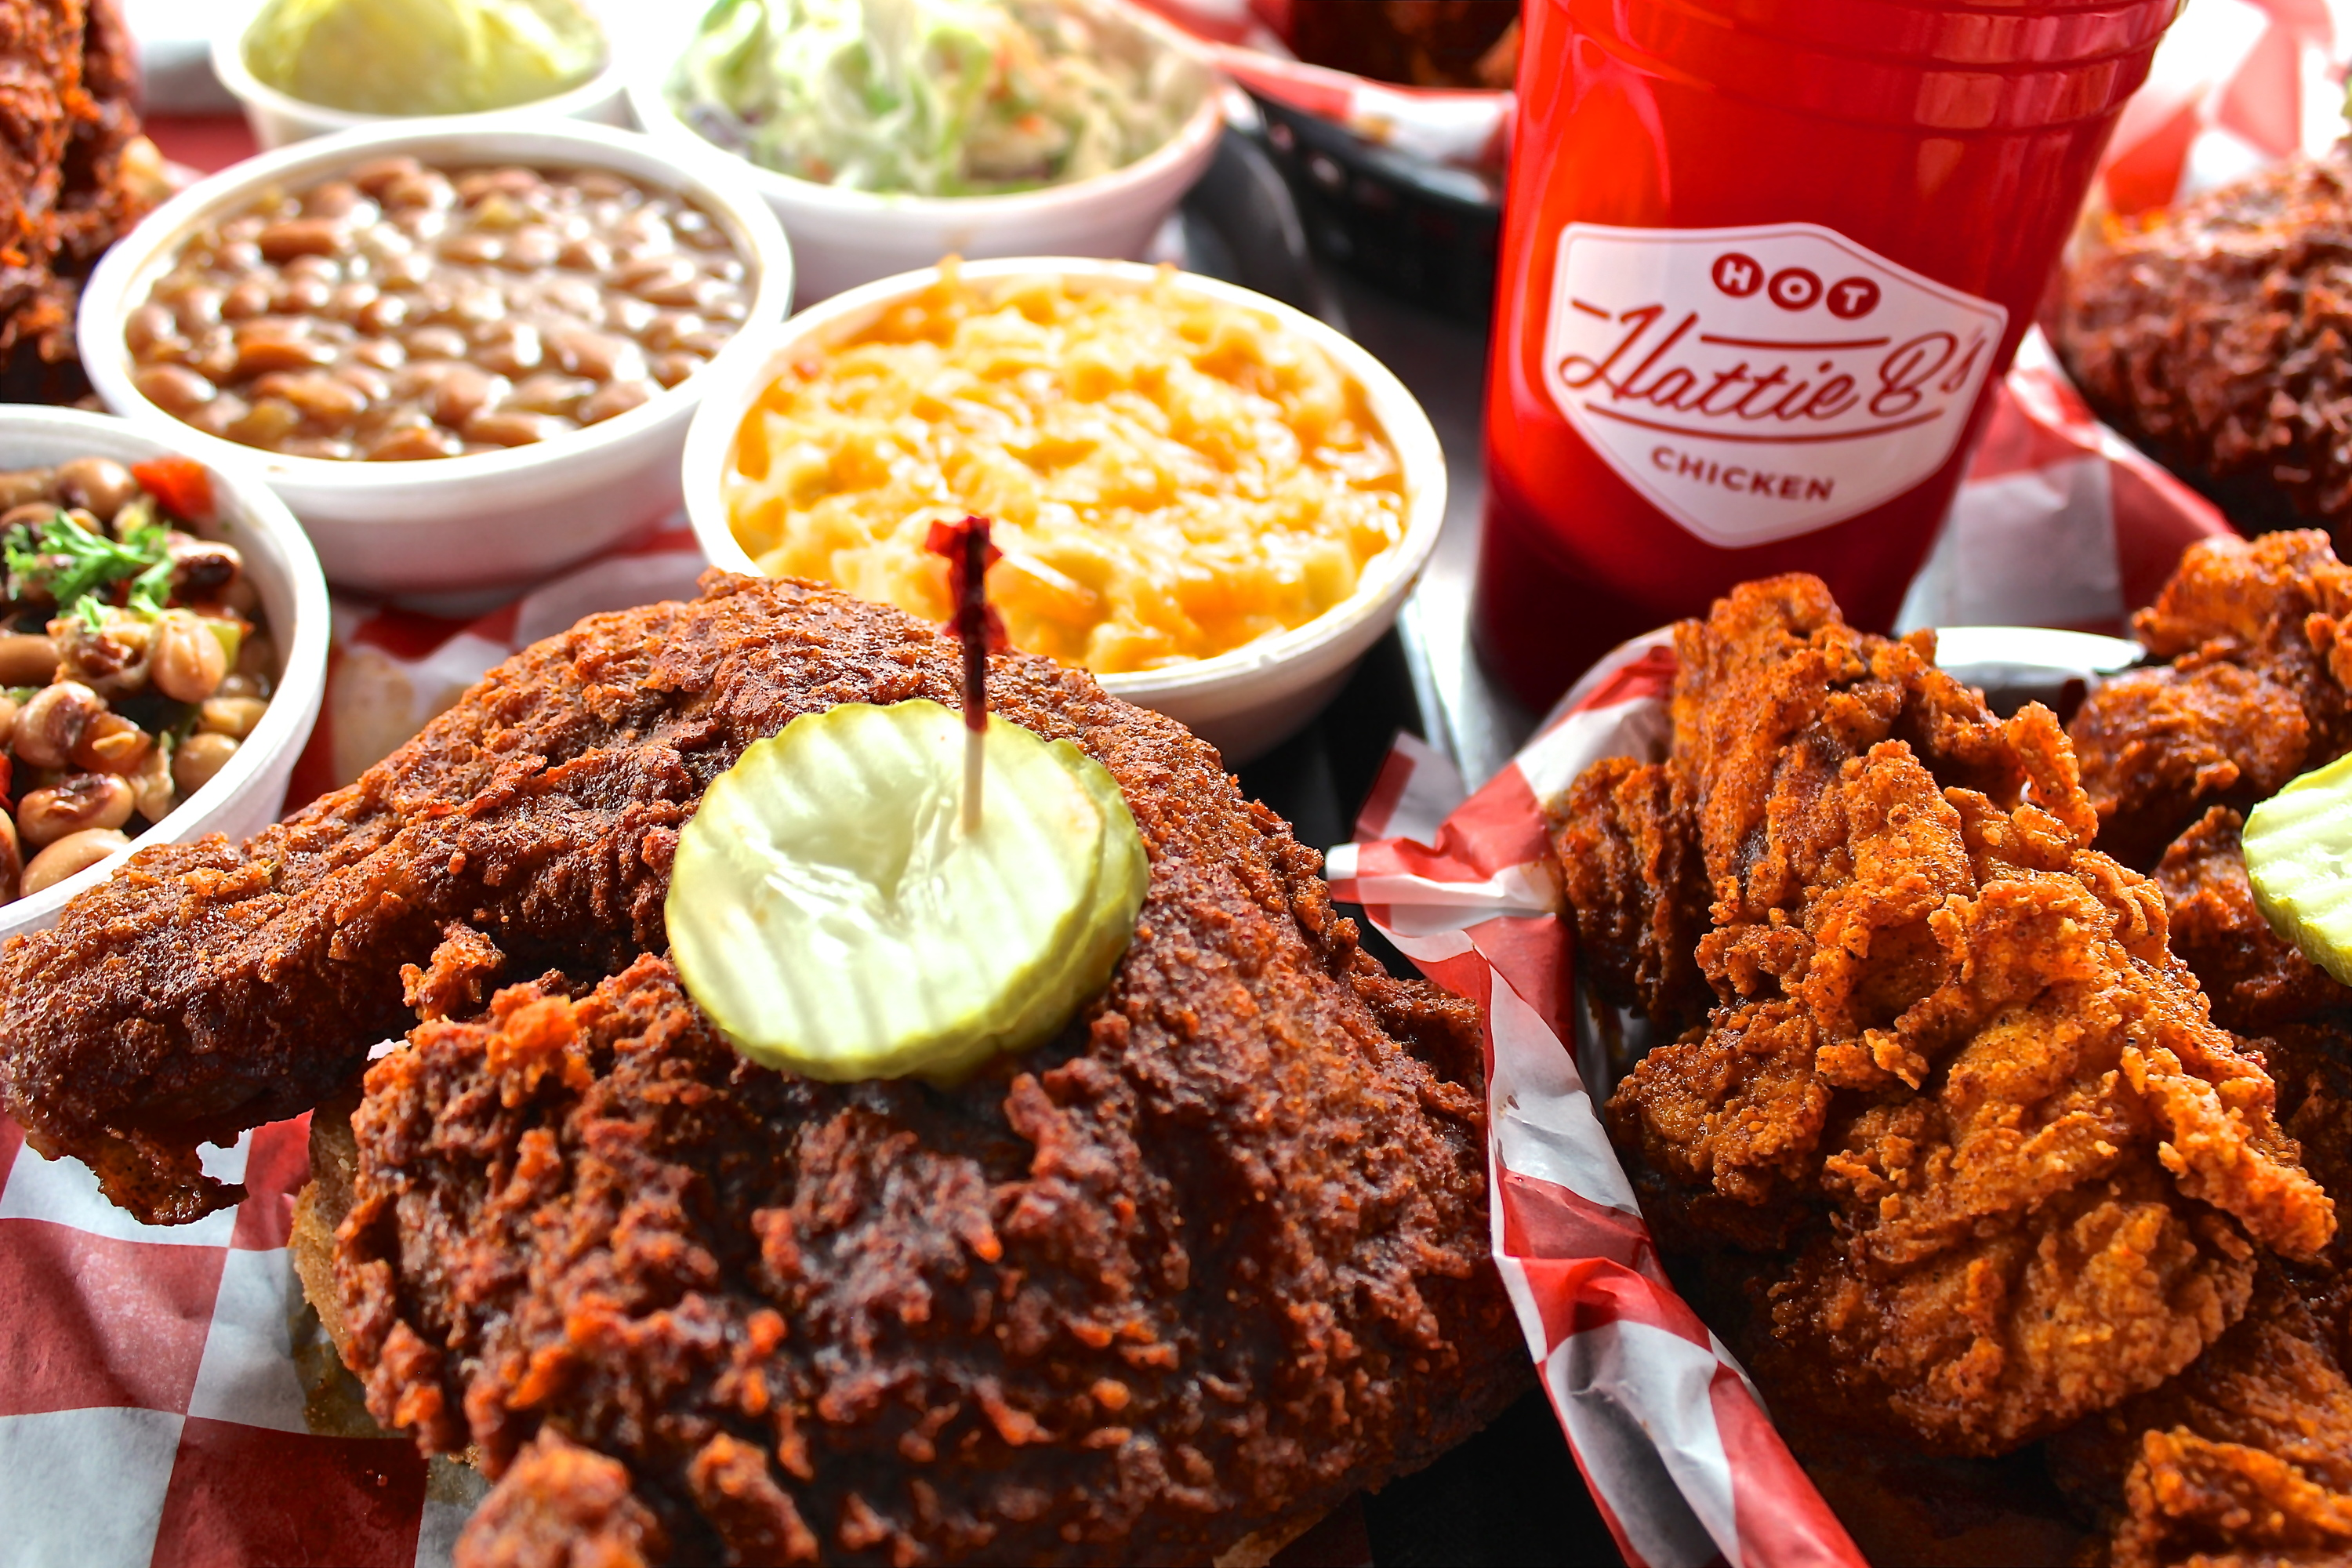 A basket of fried chicken and sides